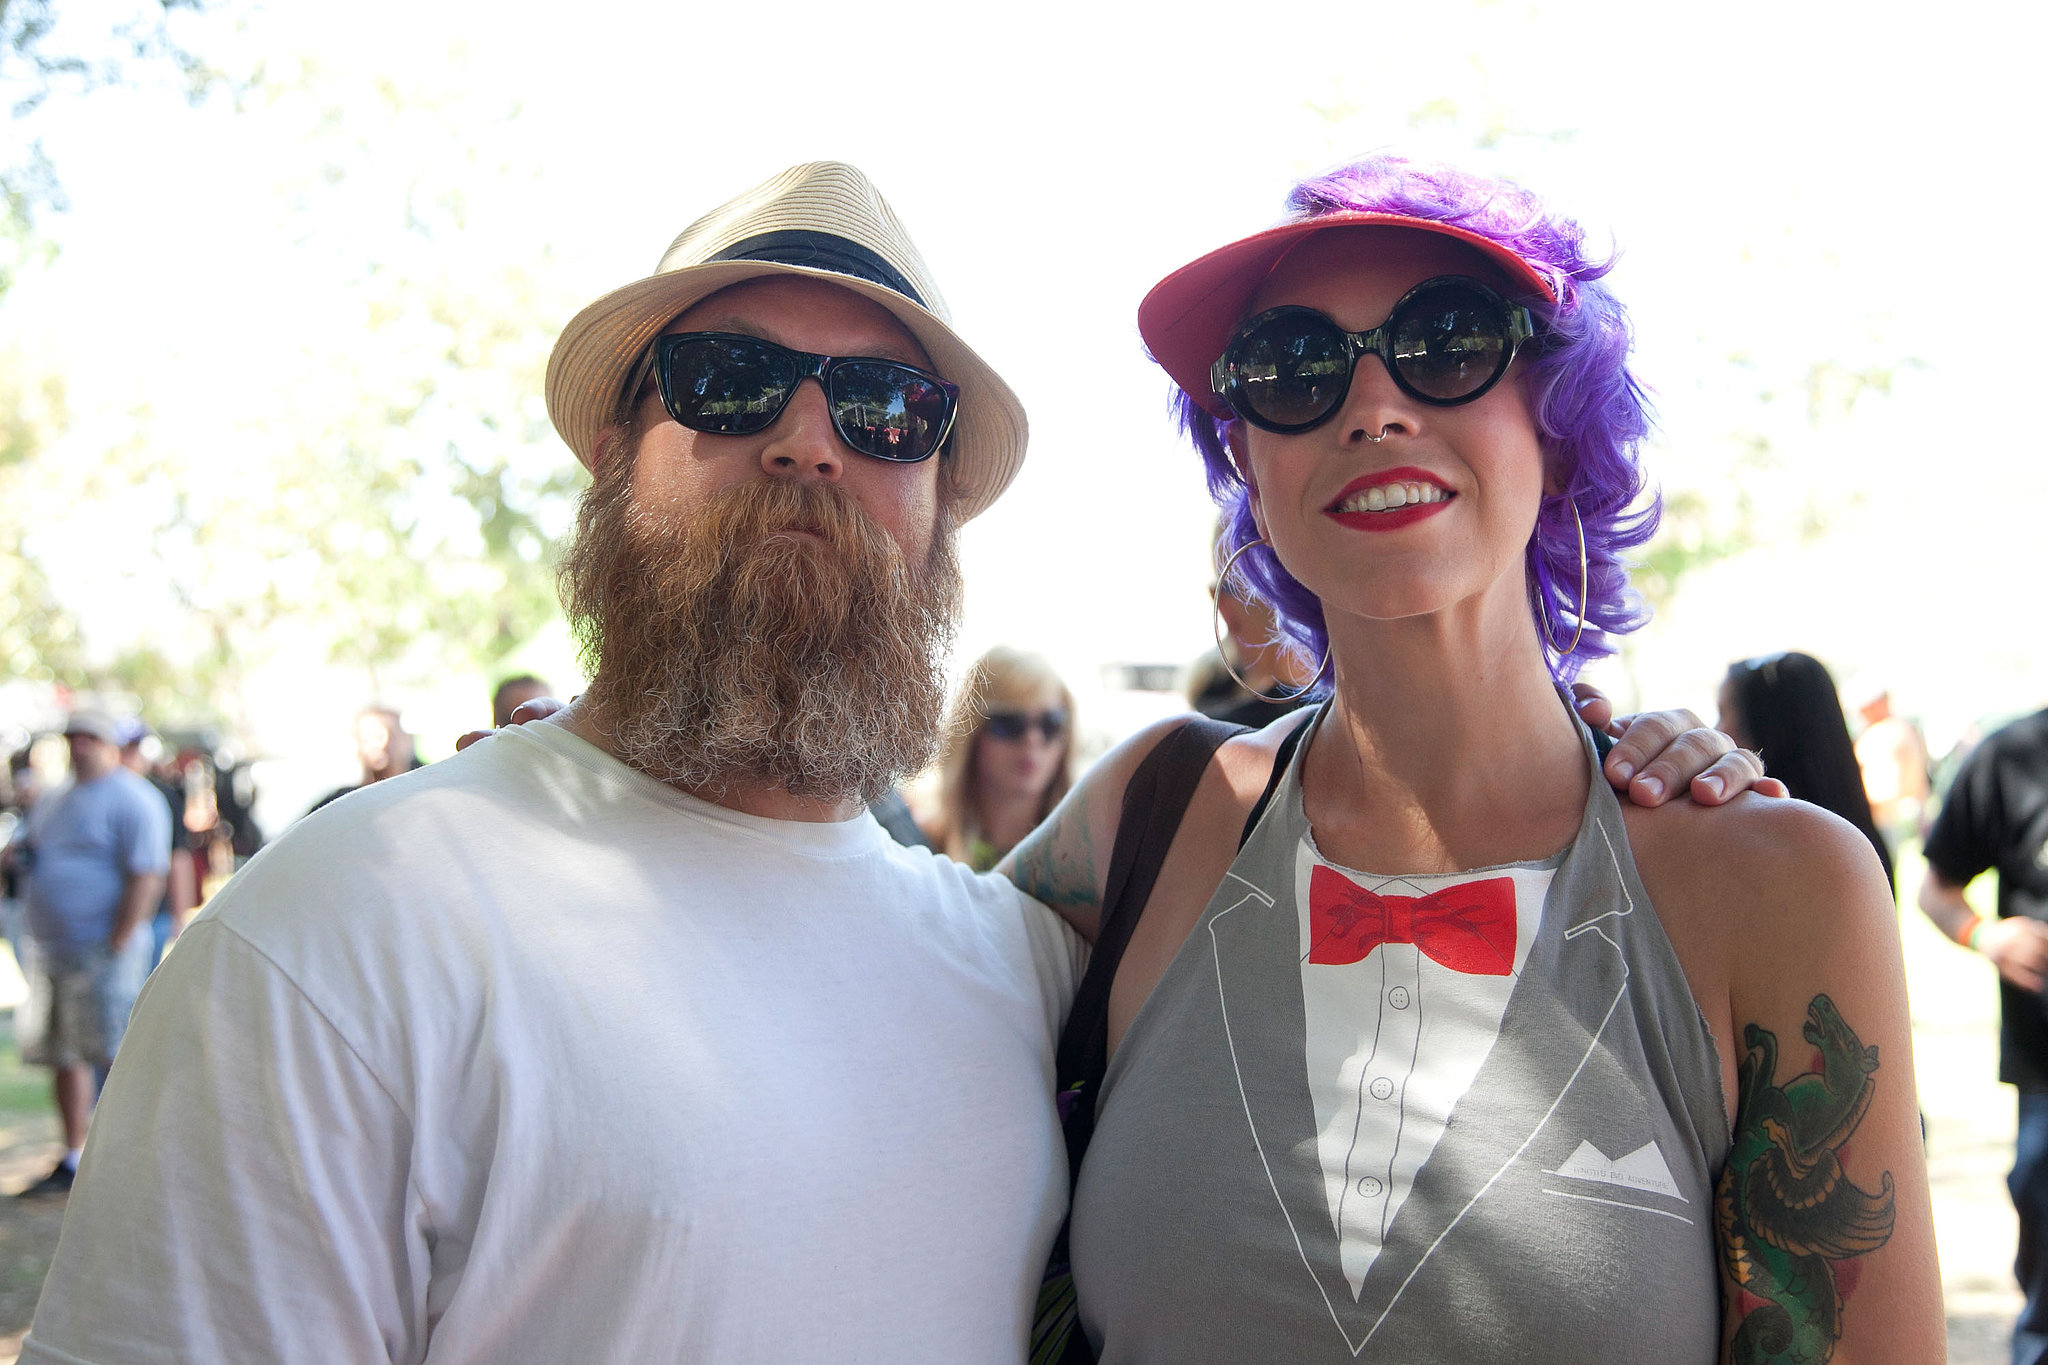 Festivalgoers showed off their flair at The Hootenanny 2012 in Orange, CA.